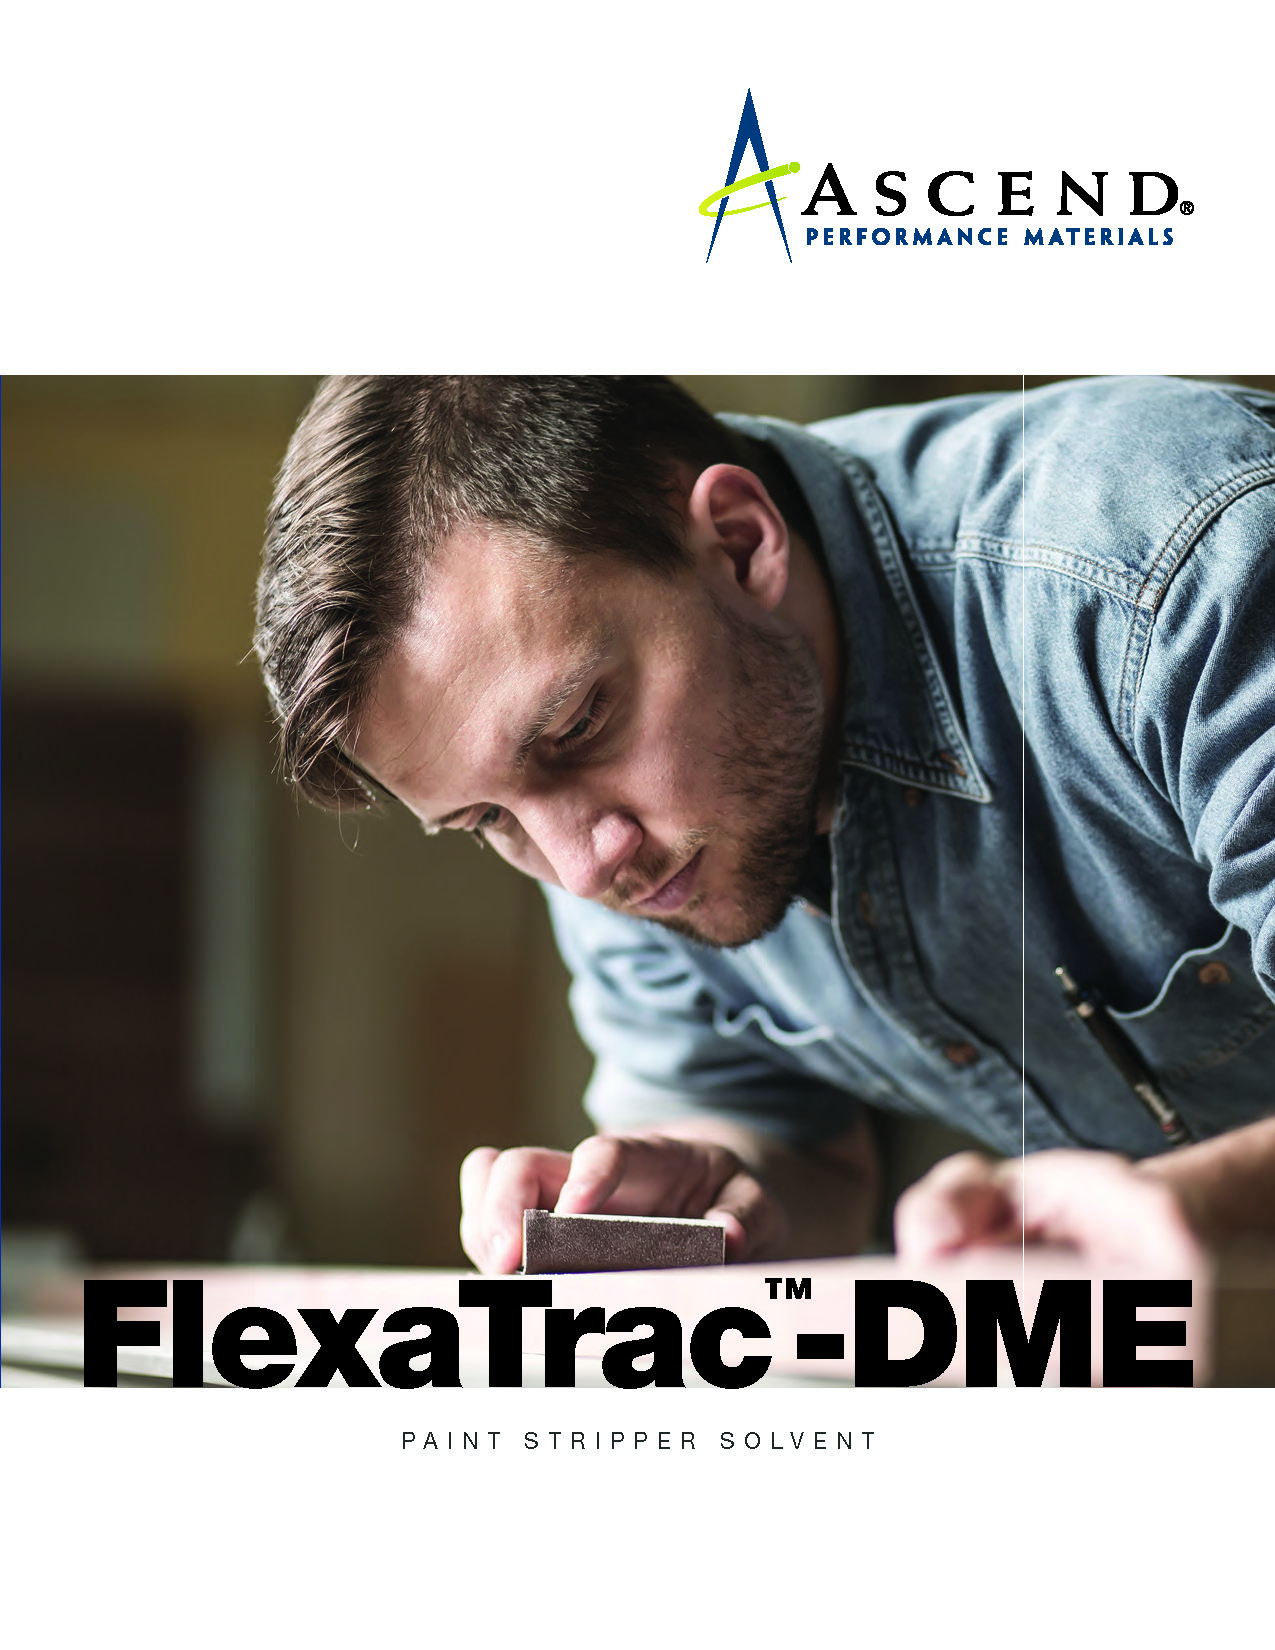 FlexaTrac®-DME paint stripper solvent